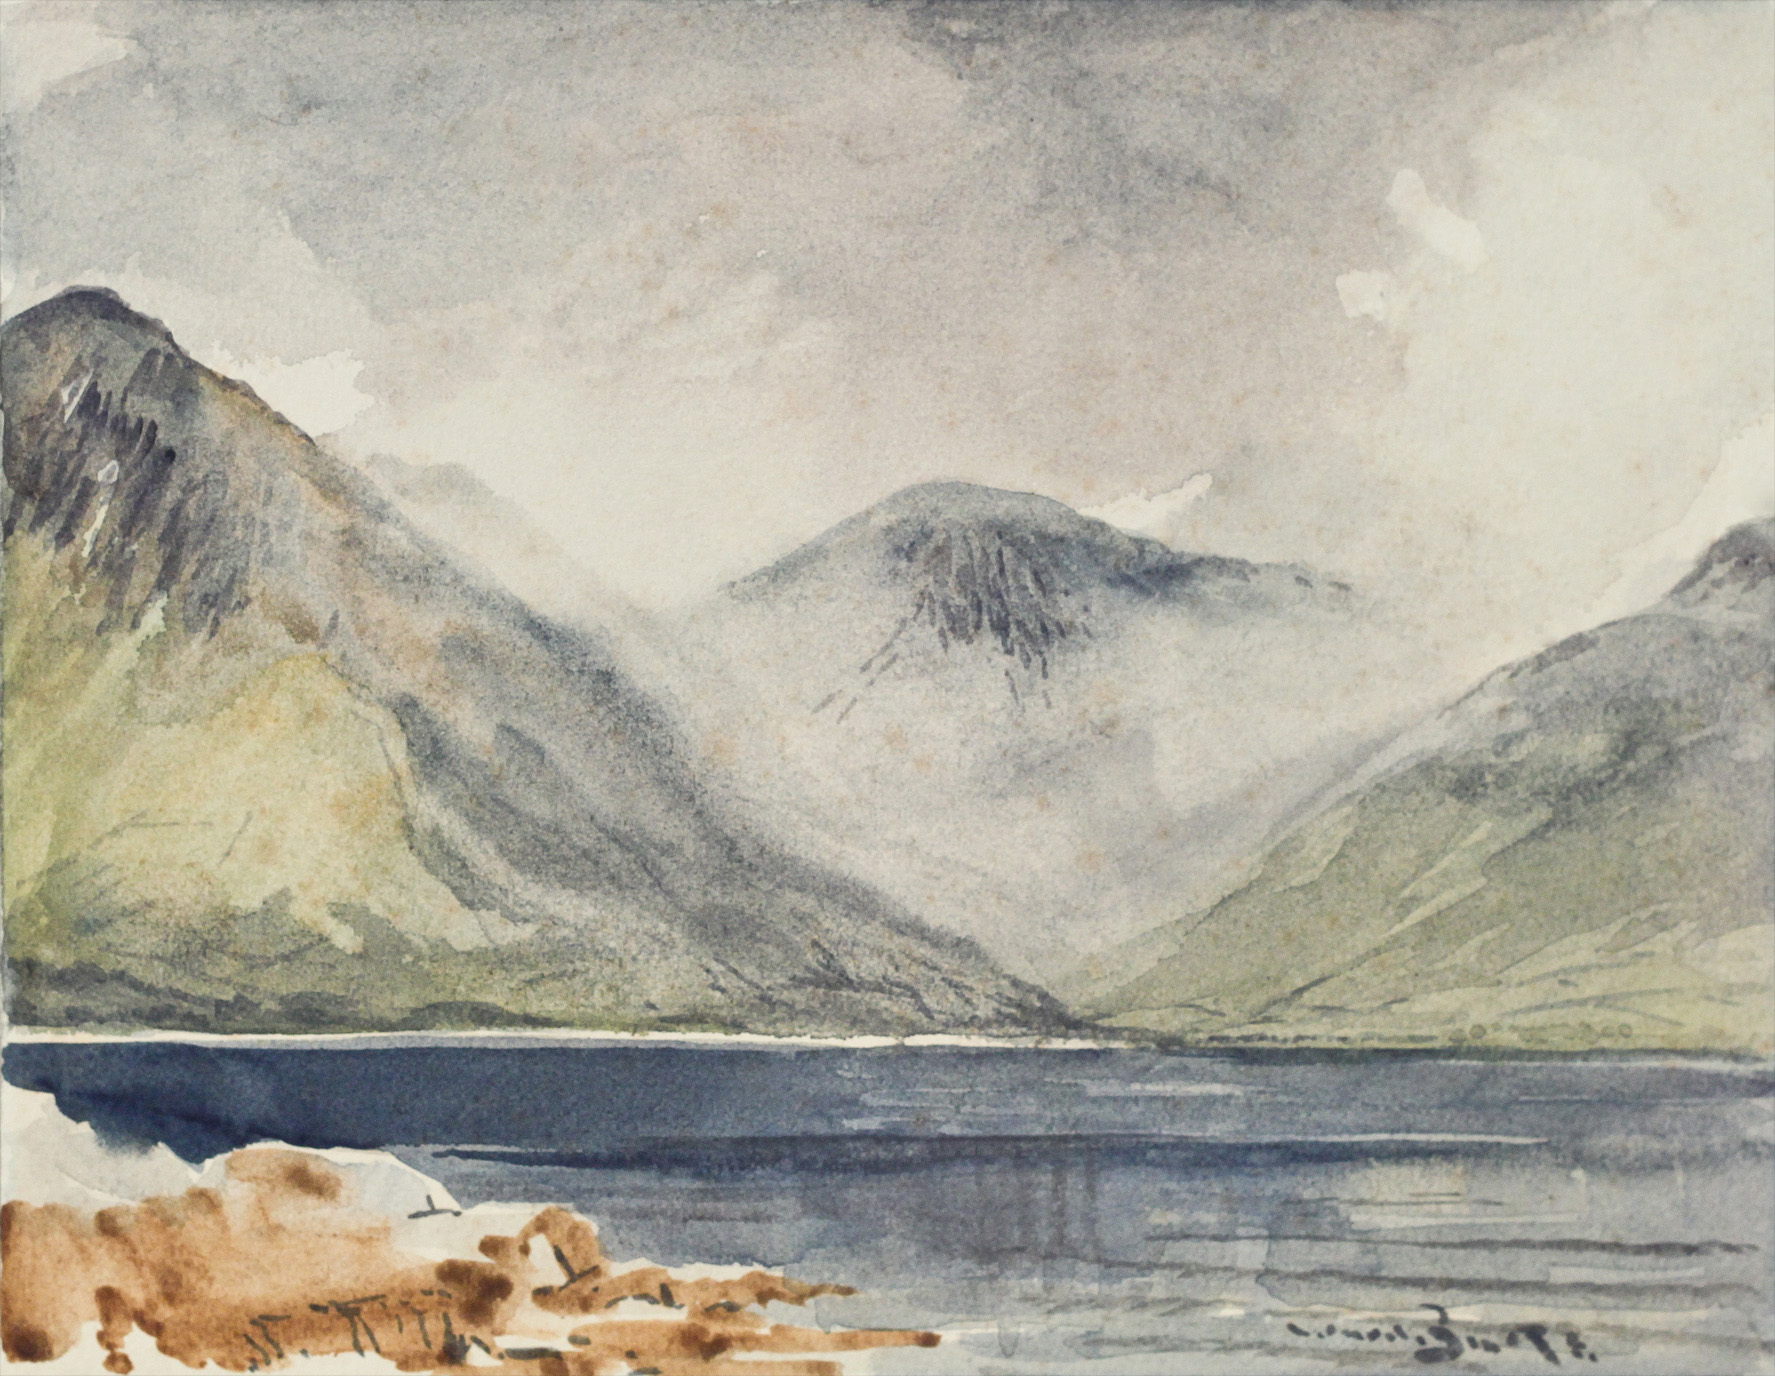 Click to see full size: Watercolour of Wastwater and Great Gable by Reuben Ward Binks (English, 1880-1950)